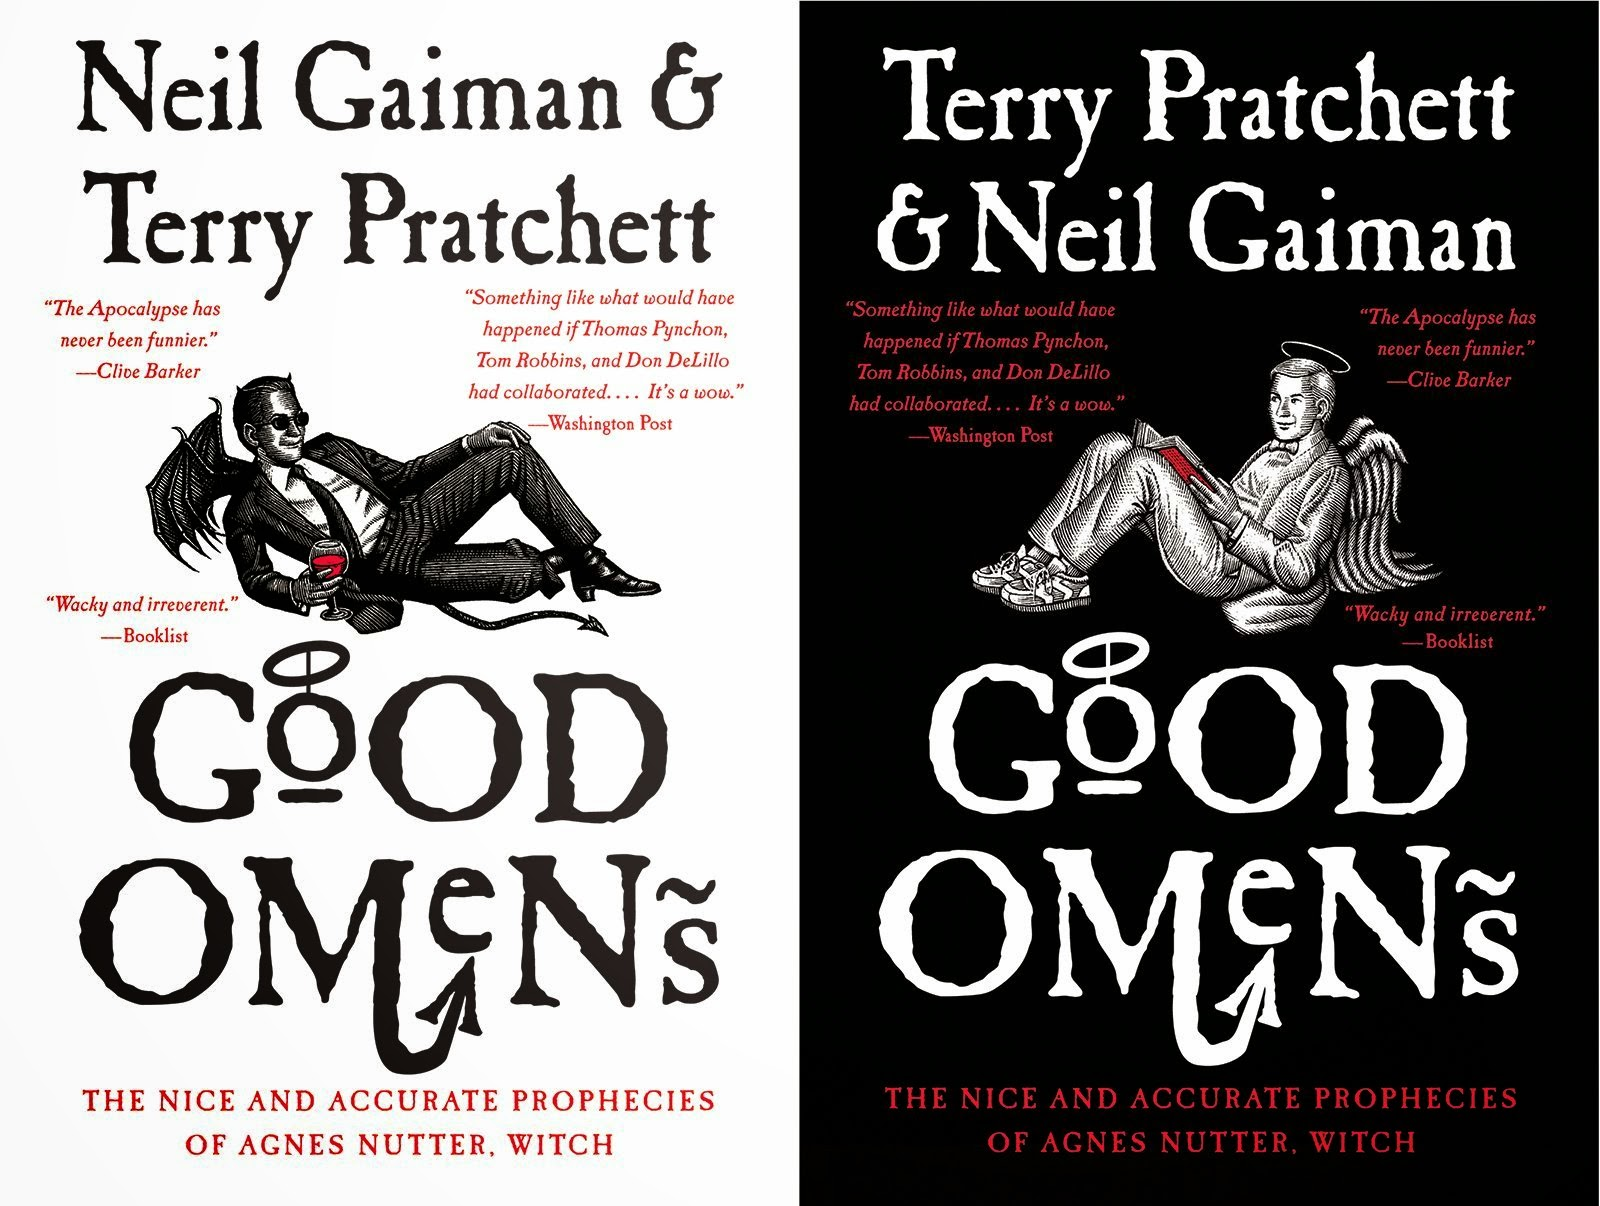 Terry Pretchett e Neil Gaiman Good Omens